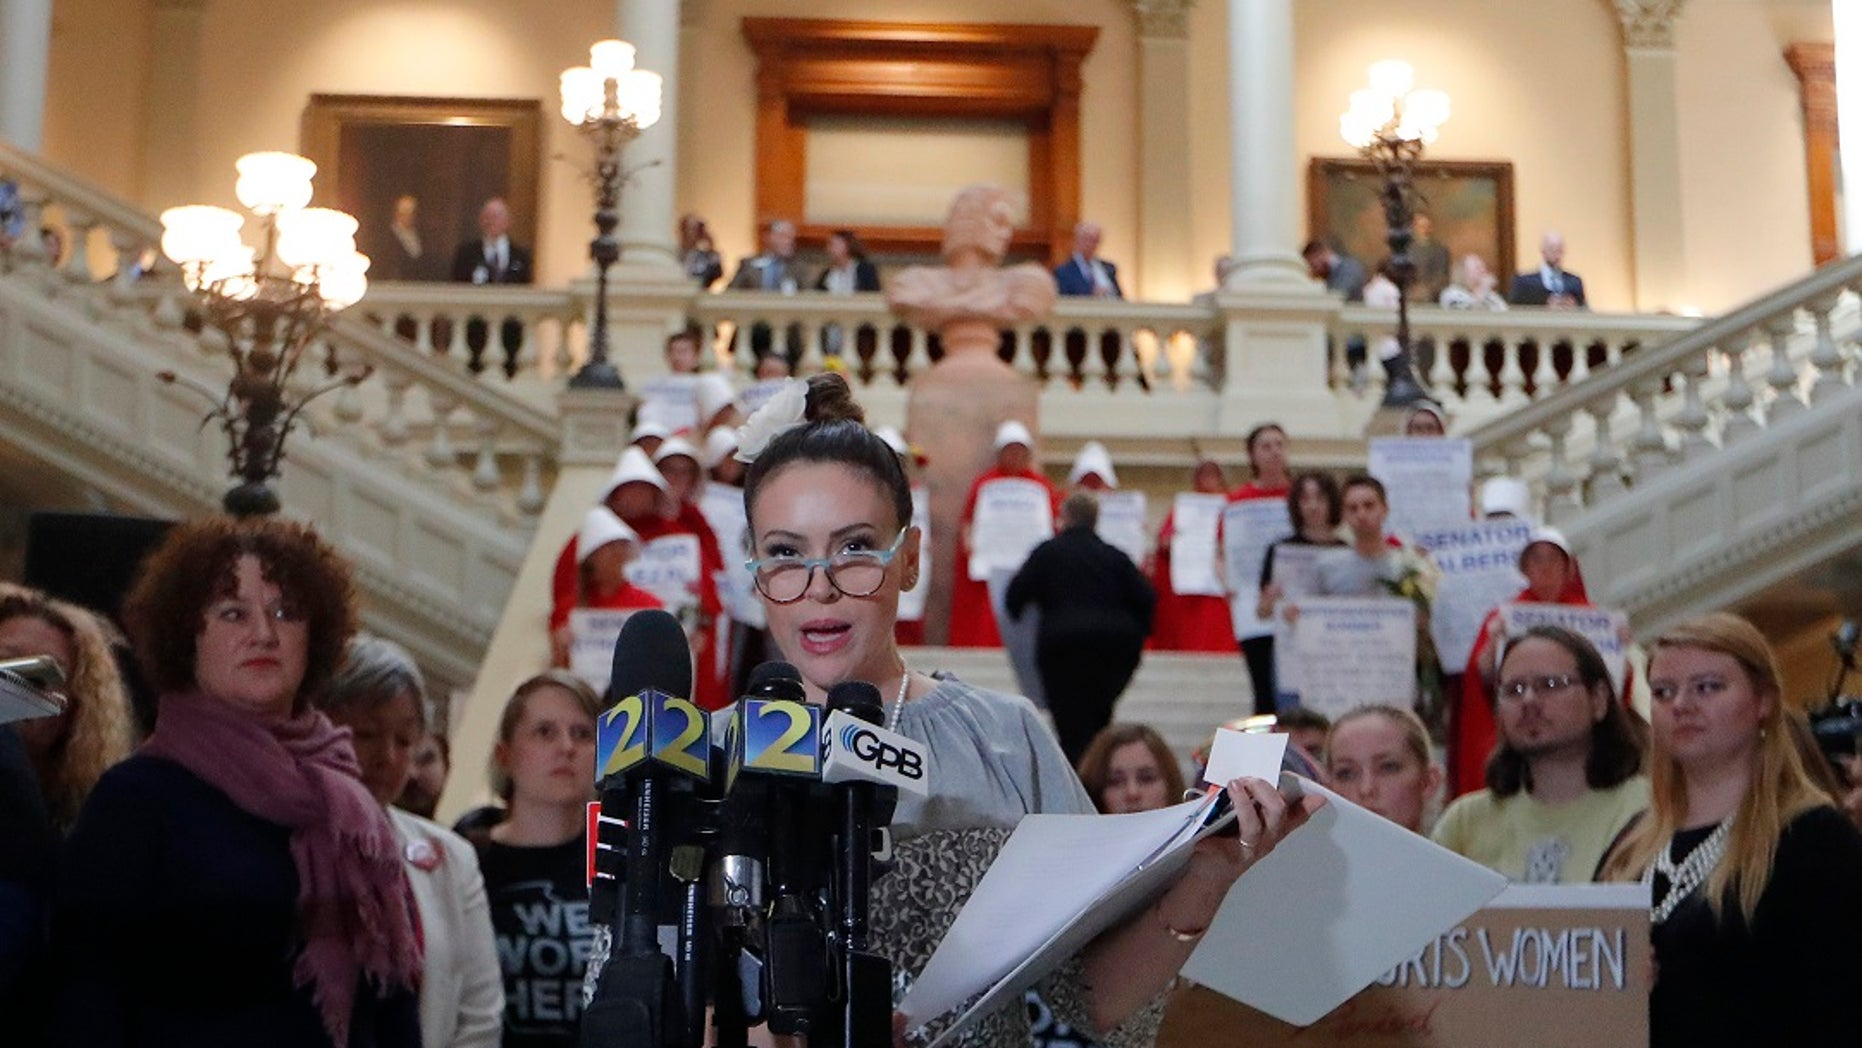 Actress Alyssa Milano speaks after delivering a letter to Georgia Gov. Brian Kemp's office detailing her opposition to HB 481 at the State Capitol, Tuesday, April 2, 2019, in Atlanta. HB 481 would ban almost all abortions after a fetal heartbeat can be detected.